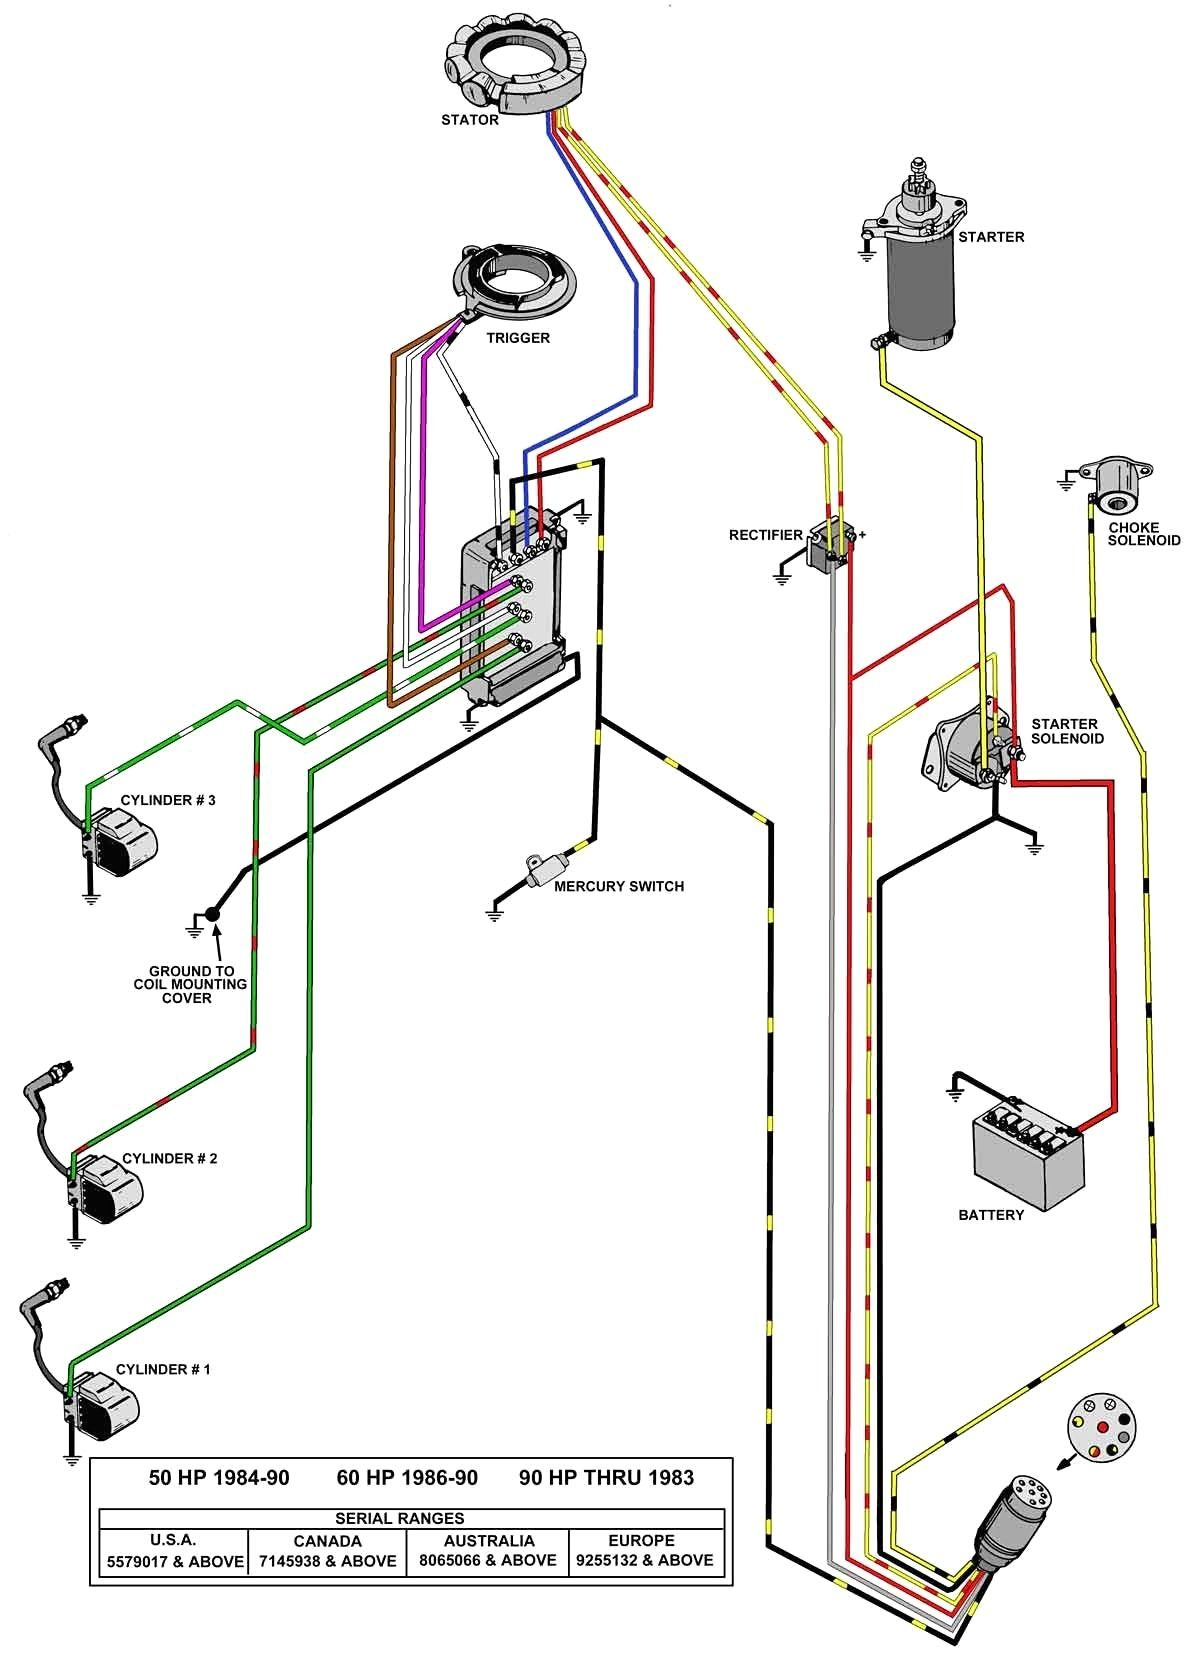 Wiring Diagram For Key Switch On Boat